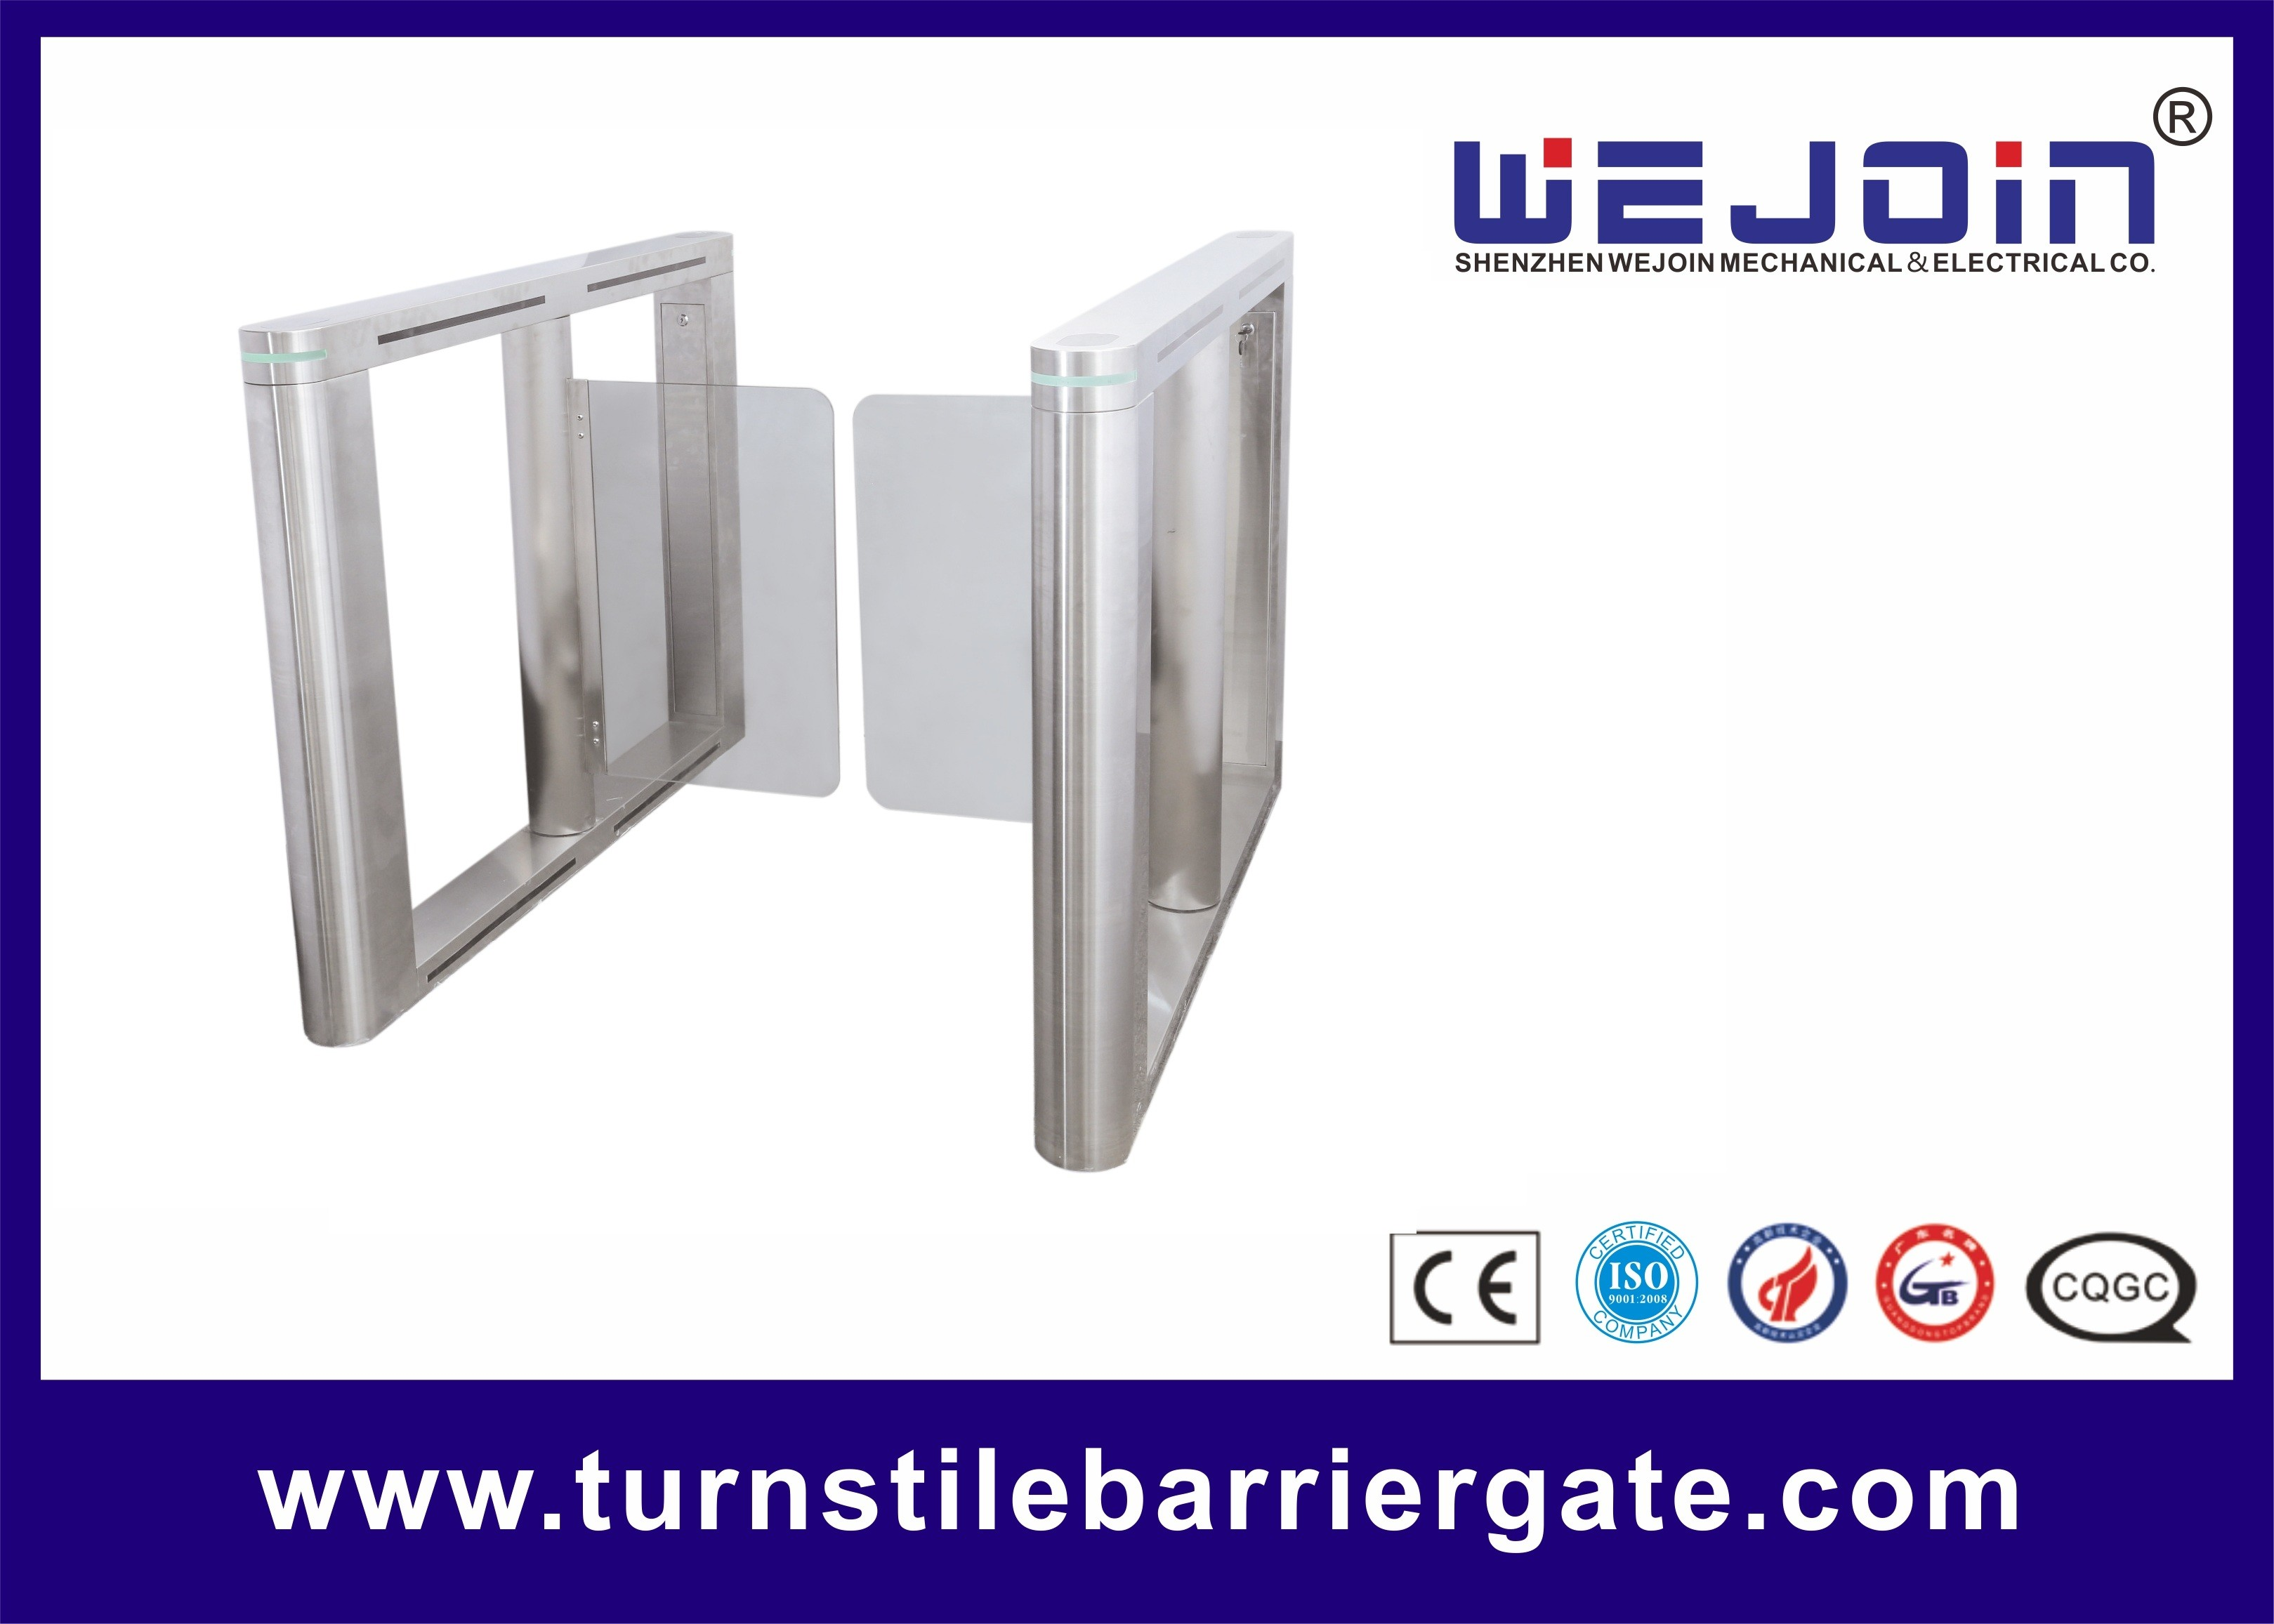 Automatic Swing Barrier Gate Integrated with Card Readers